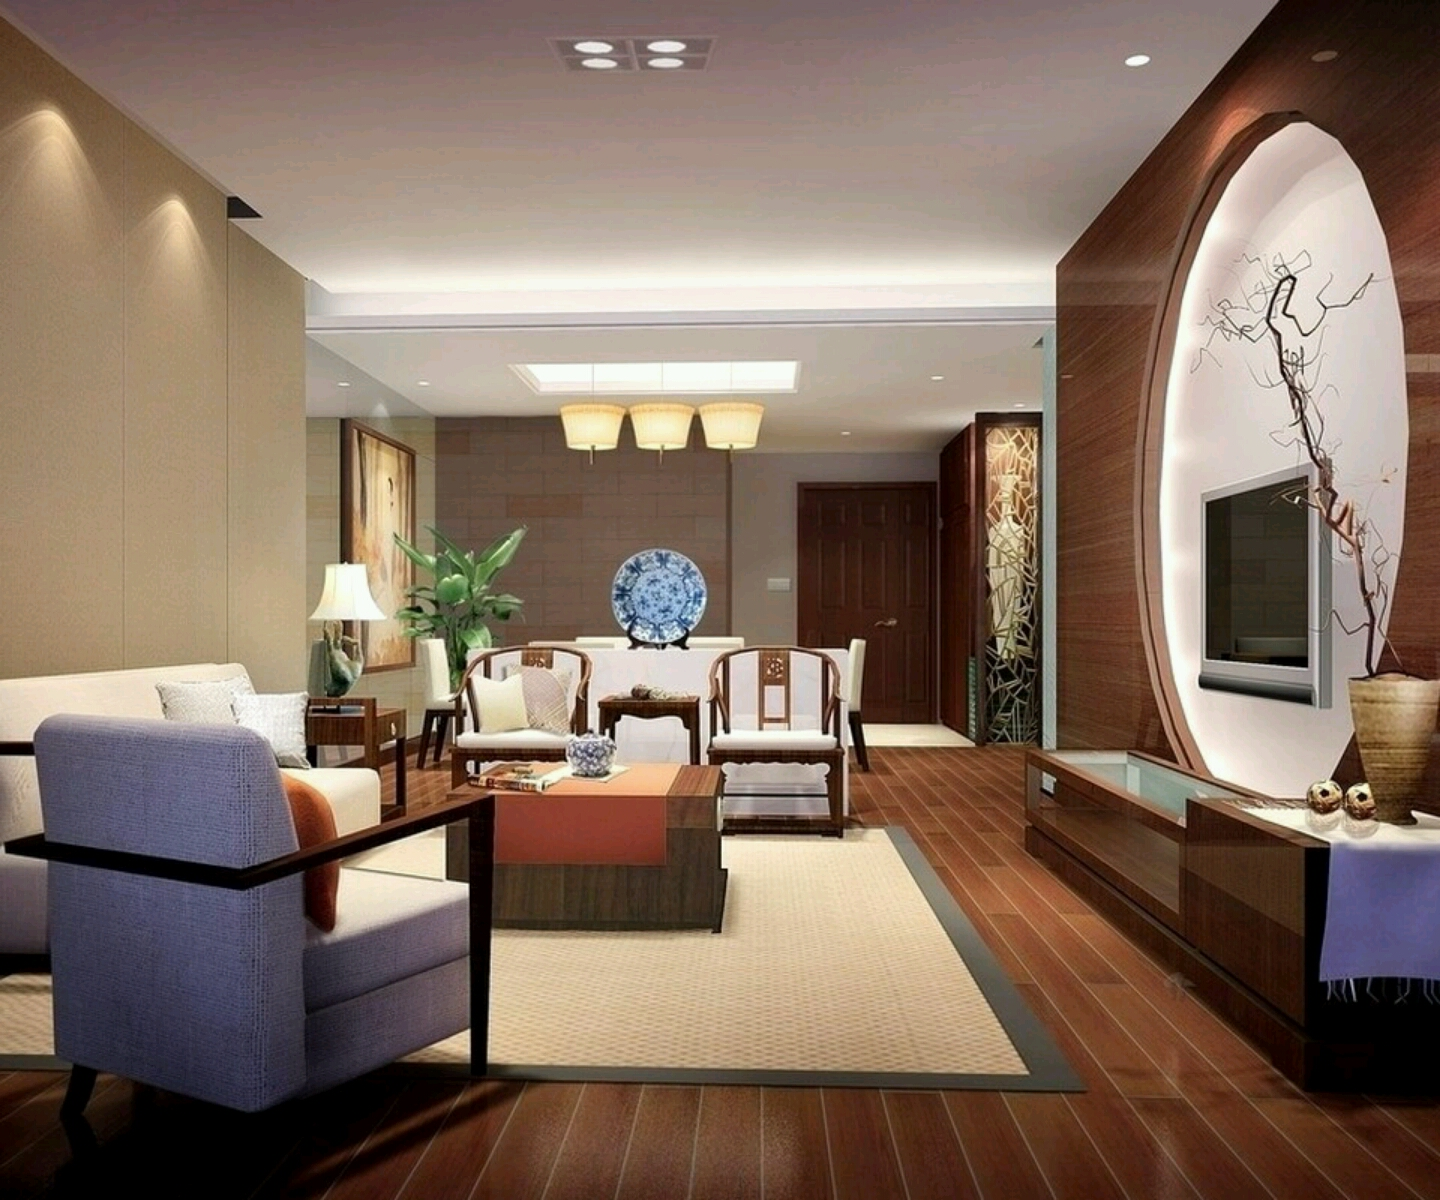 Luxury homes interior decoration living room designs ideas for Interior design plans for houses